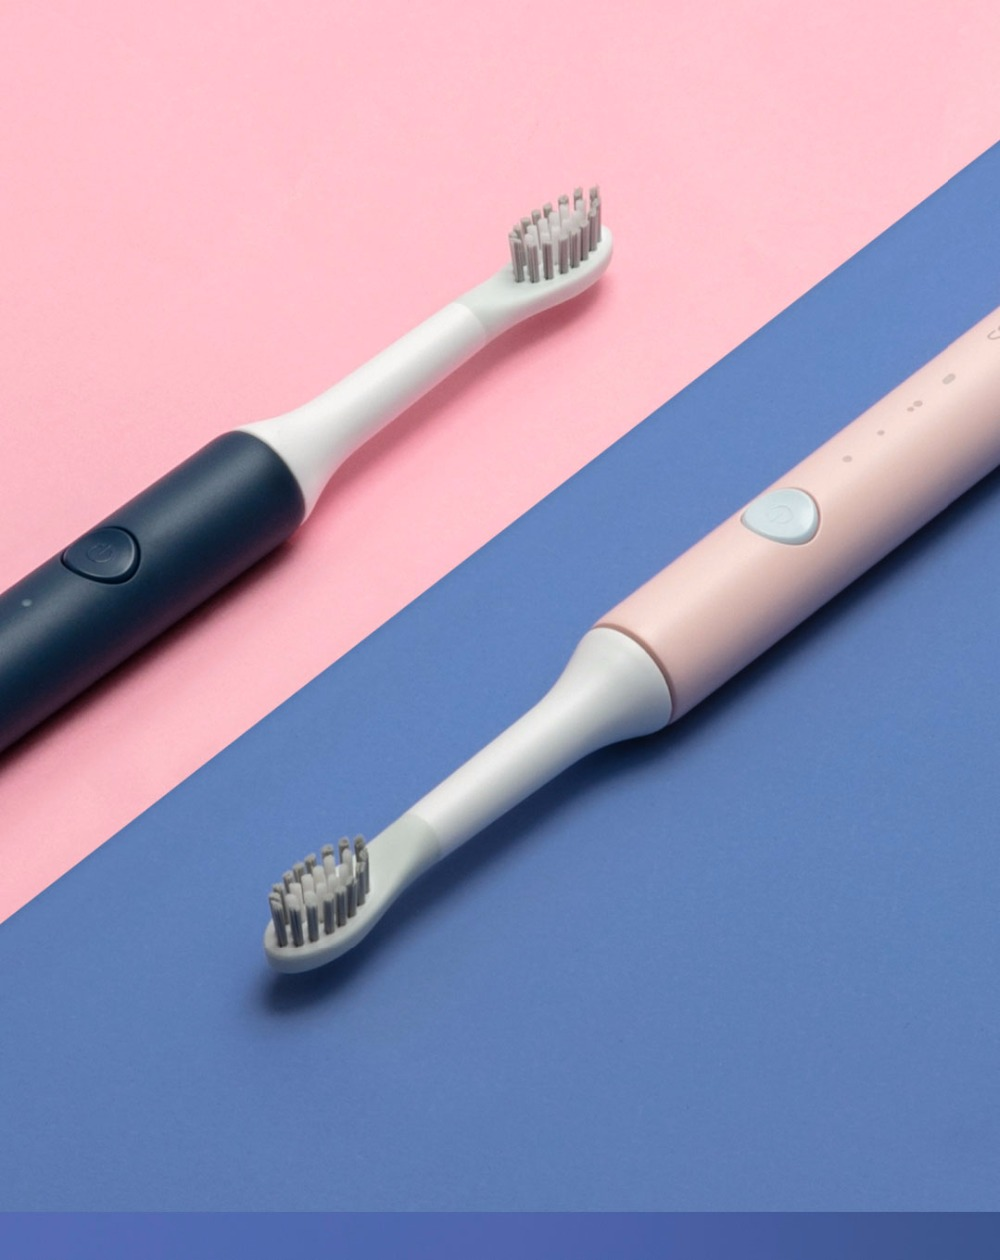 Xiaomi Mijia SO WHITE Sonic Electric Toothbrush Portable IPX7 Waterproof Deep Clean Inductive Rechargeable Wireless Tooth Brush (13)